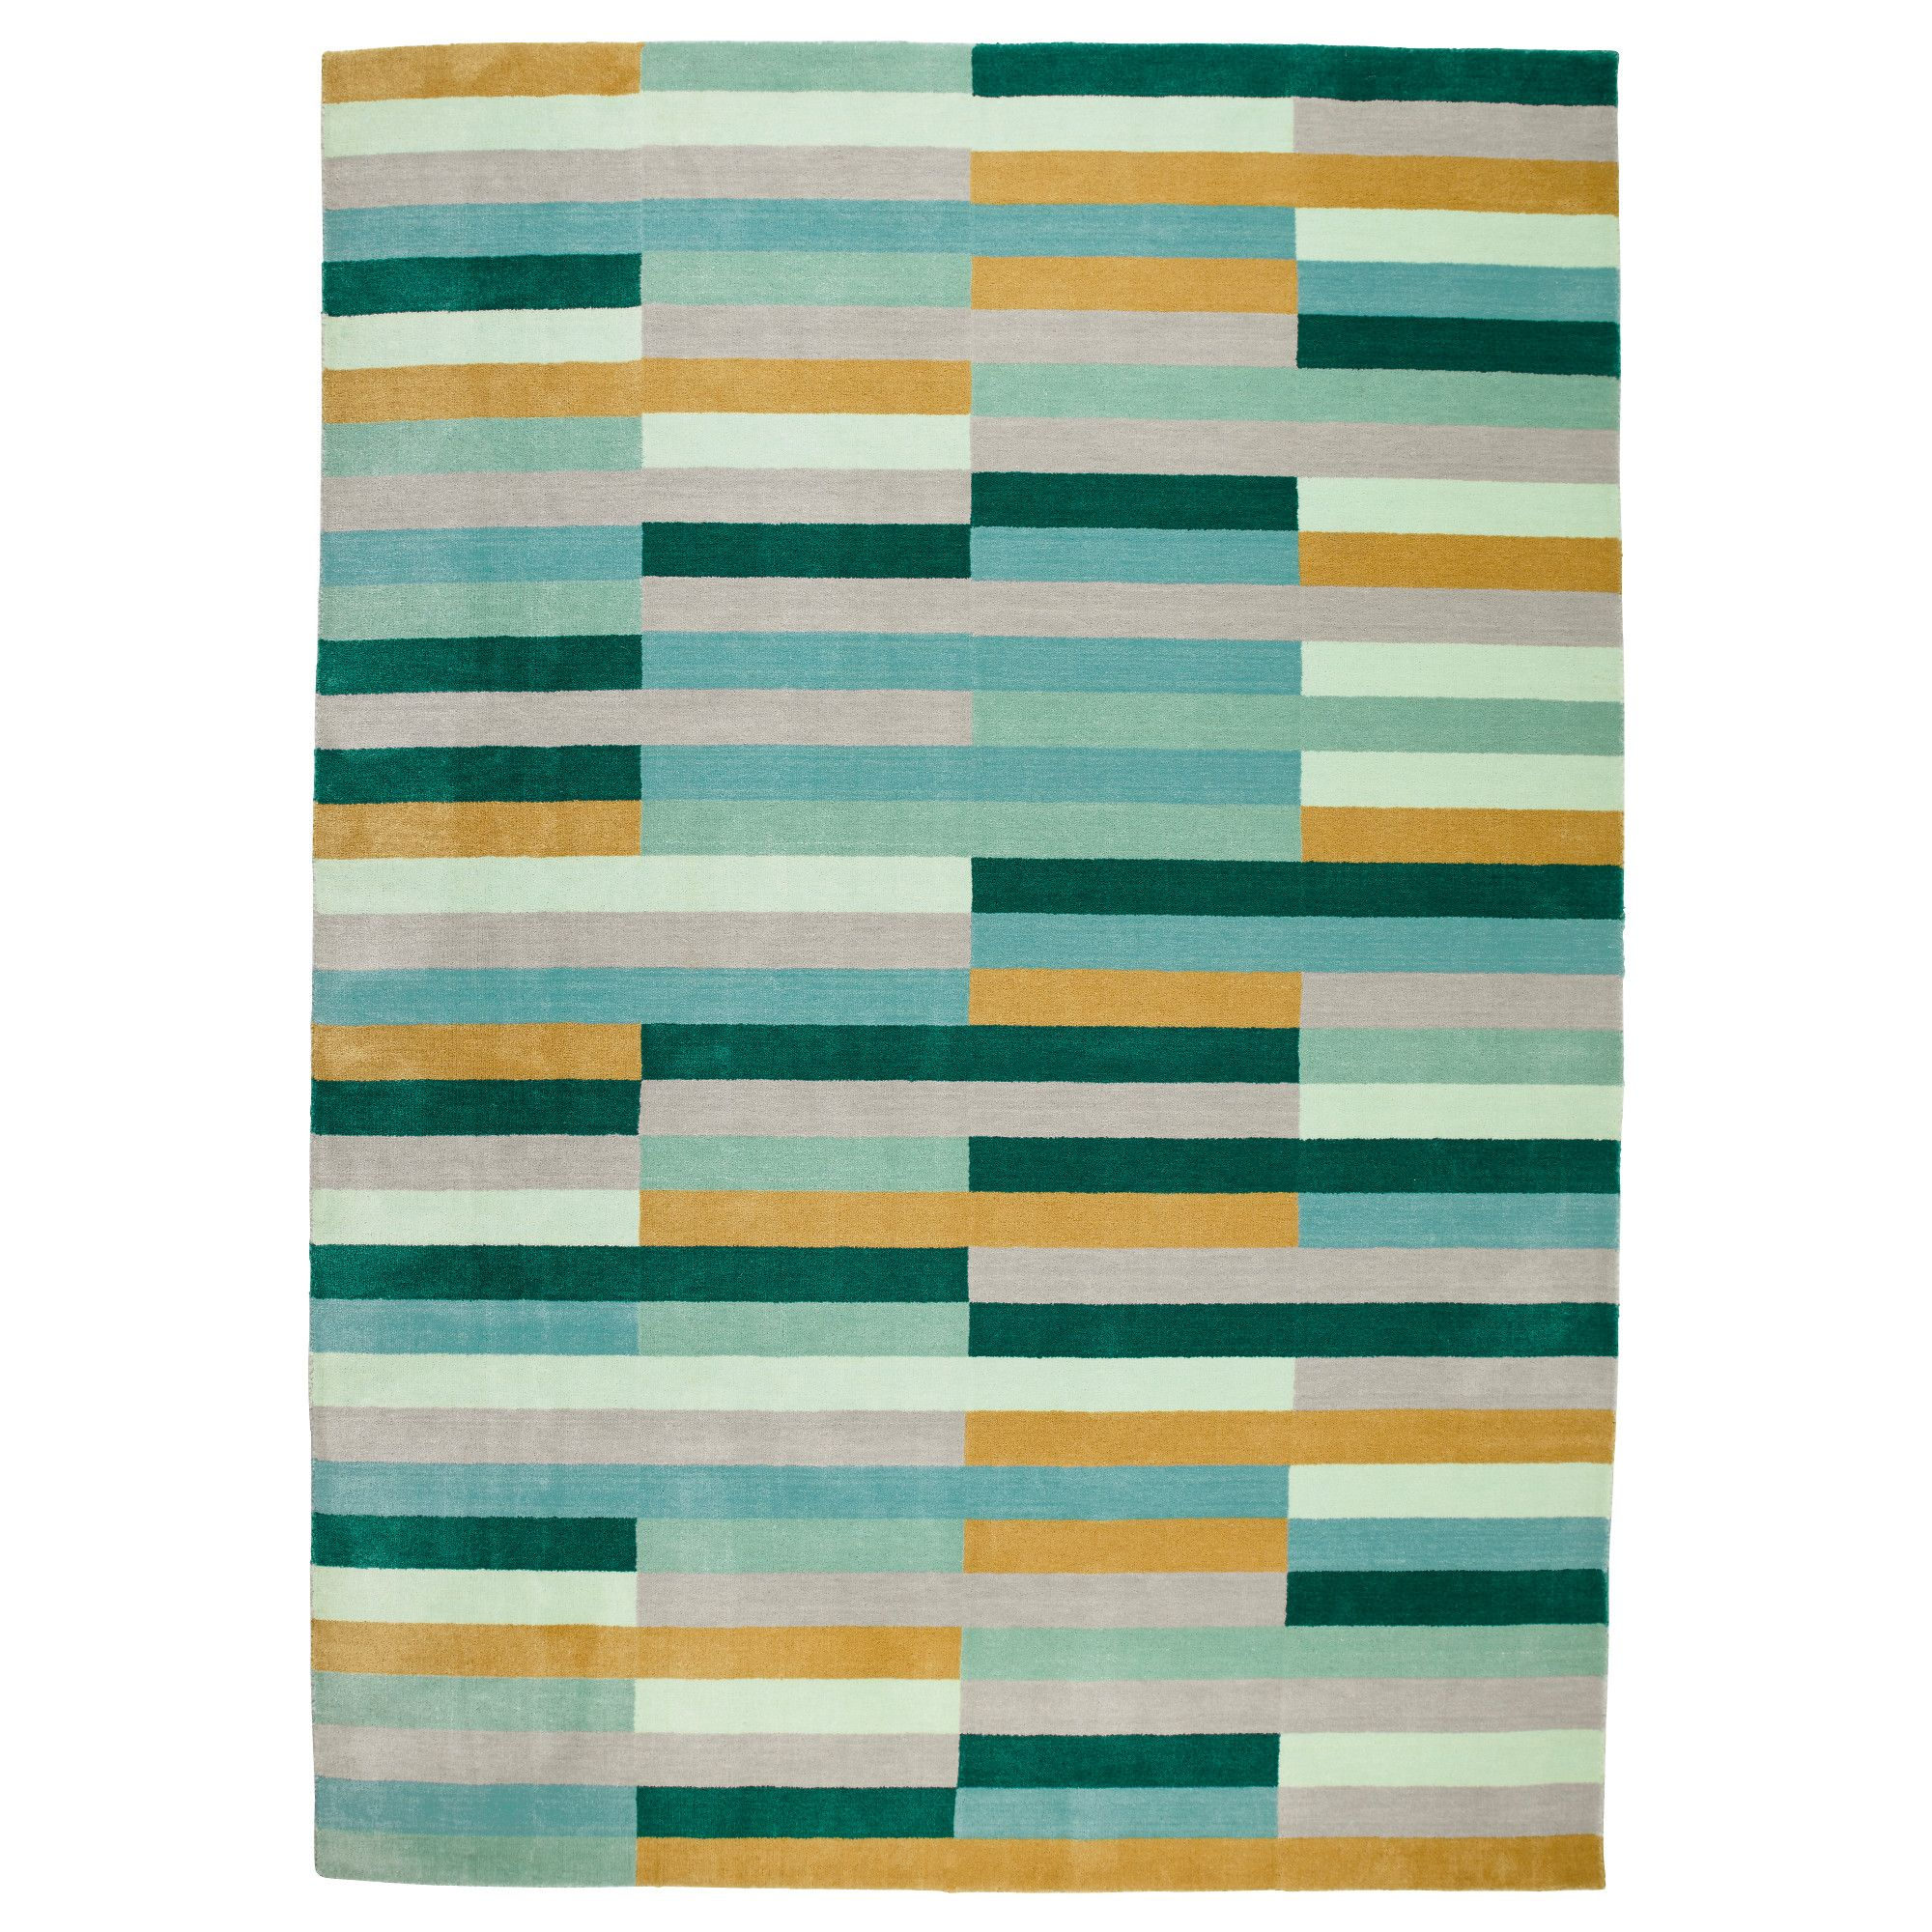 KRÖNGE Rug, low pile, handmade, multicolor | Apartments and Kitchens